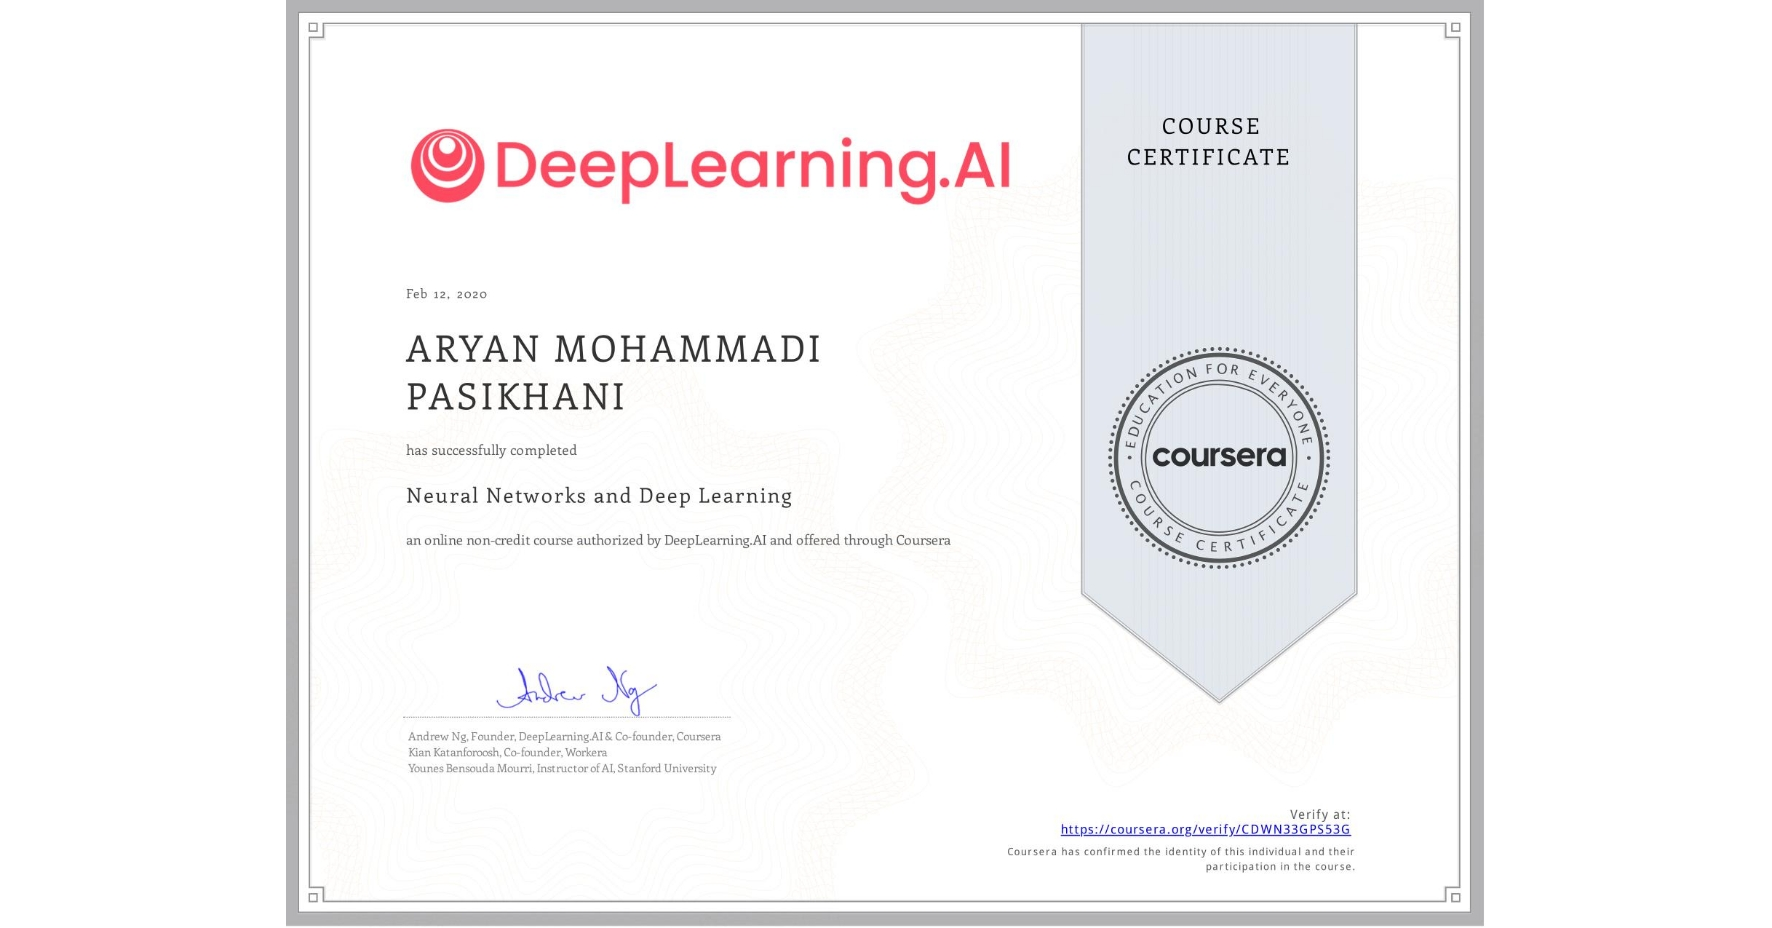 View certificate for ARYAN MOHAMMADI PASIKHANI, Neural Networks and Deep Learning, an online non-credit course authorized by DeepLearning.AI and offered through Coursera